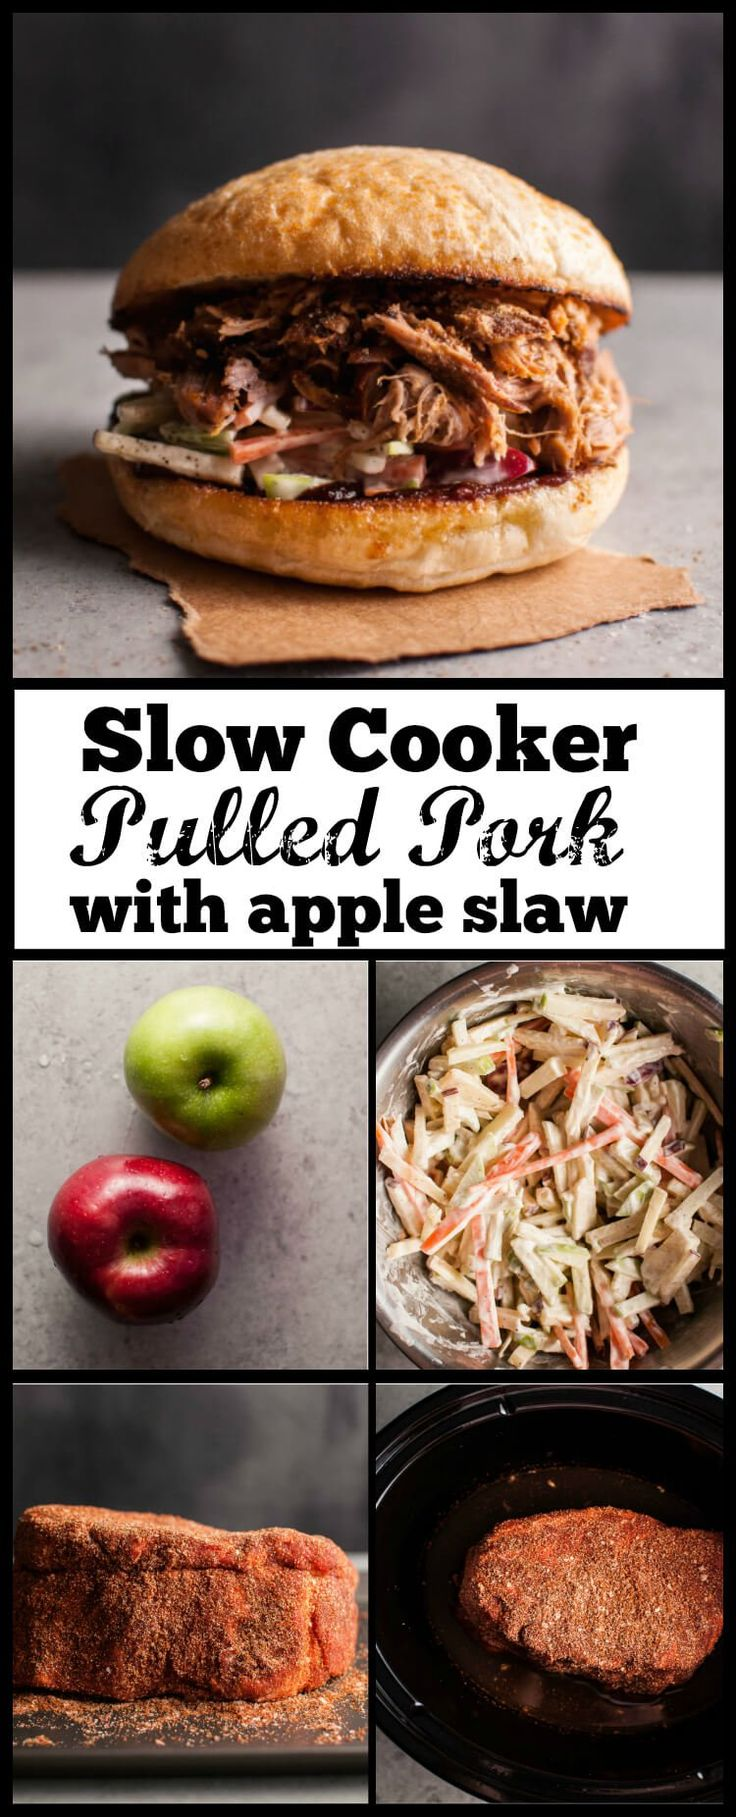 Tender, flavorful pulled pork, crunchy apple slaw, and your favorite BBQ sauce make this awesome sandwich a reality! If you're a pulled pork fan, you'll love this slow cooker pulled pork sandwich with apple slaw.